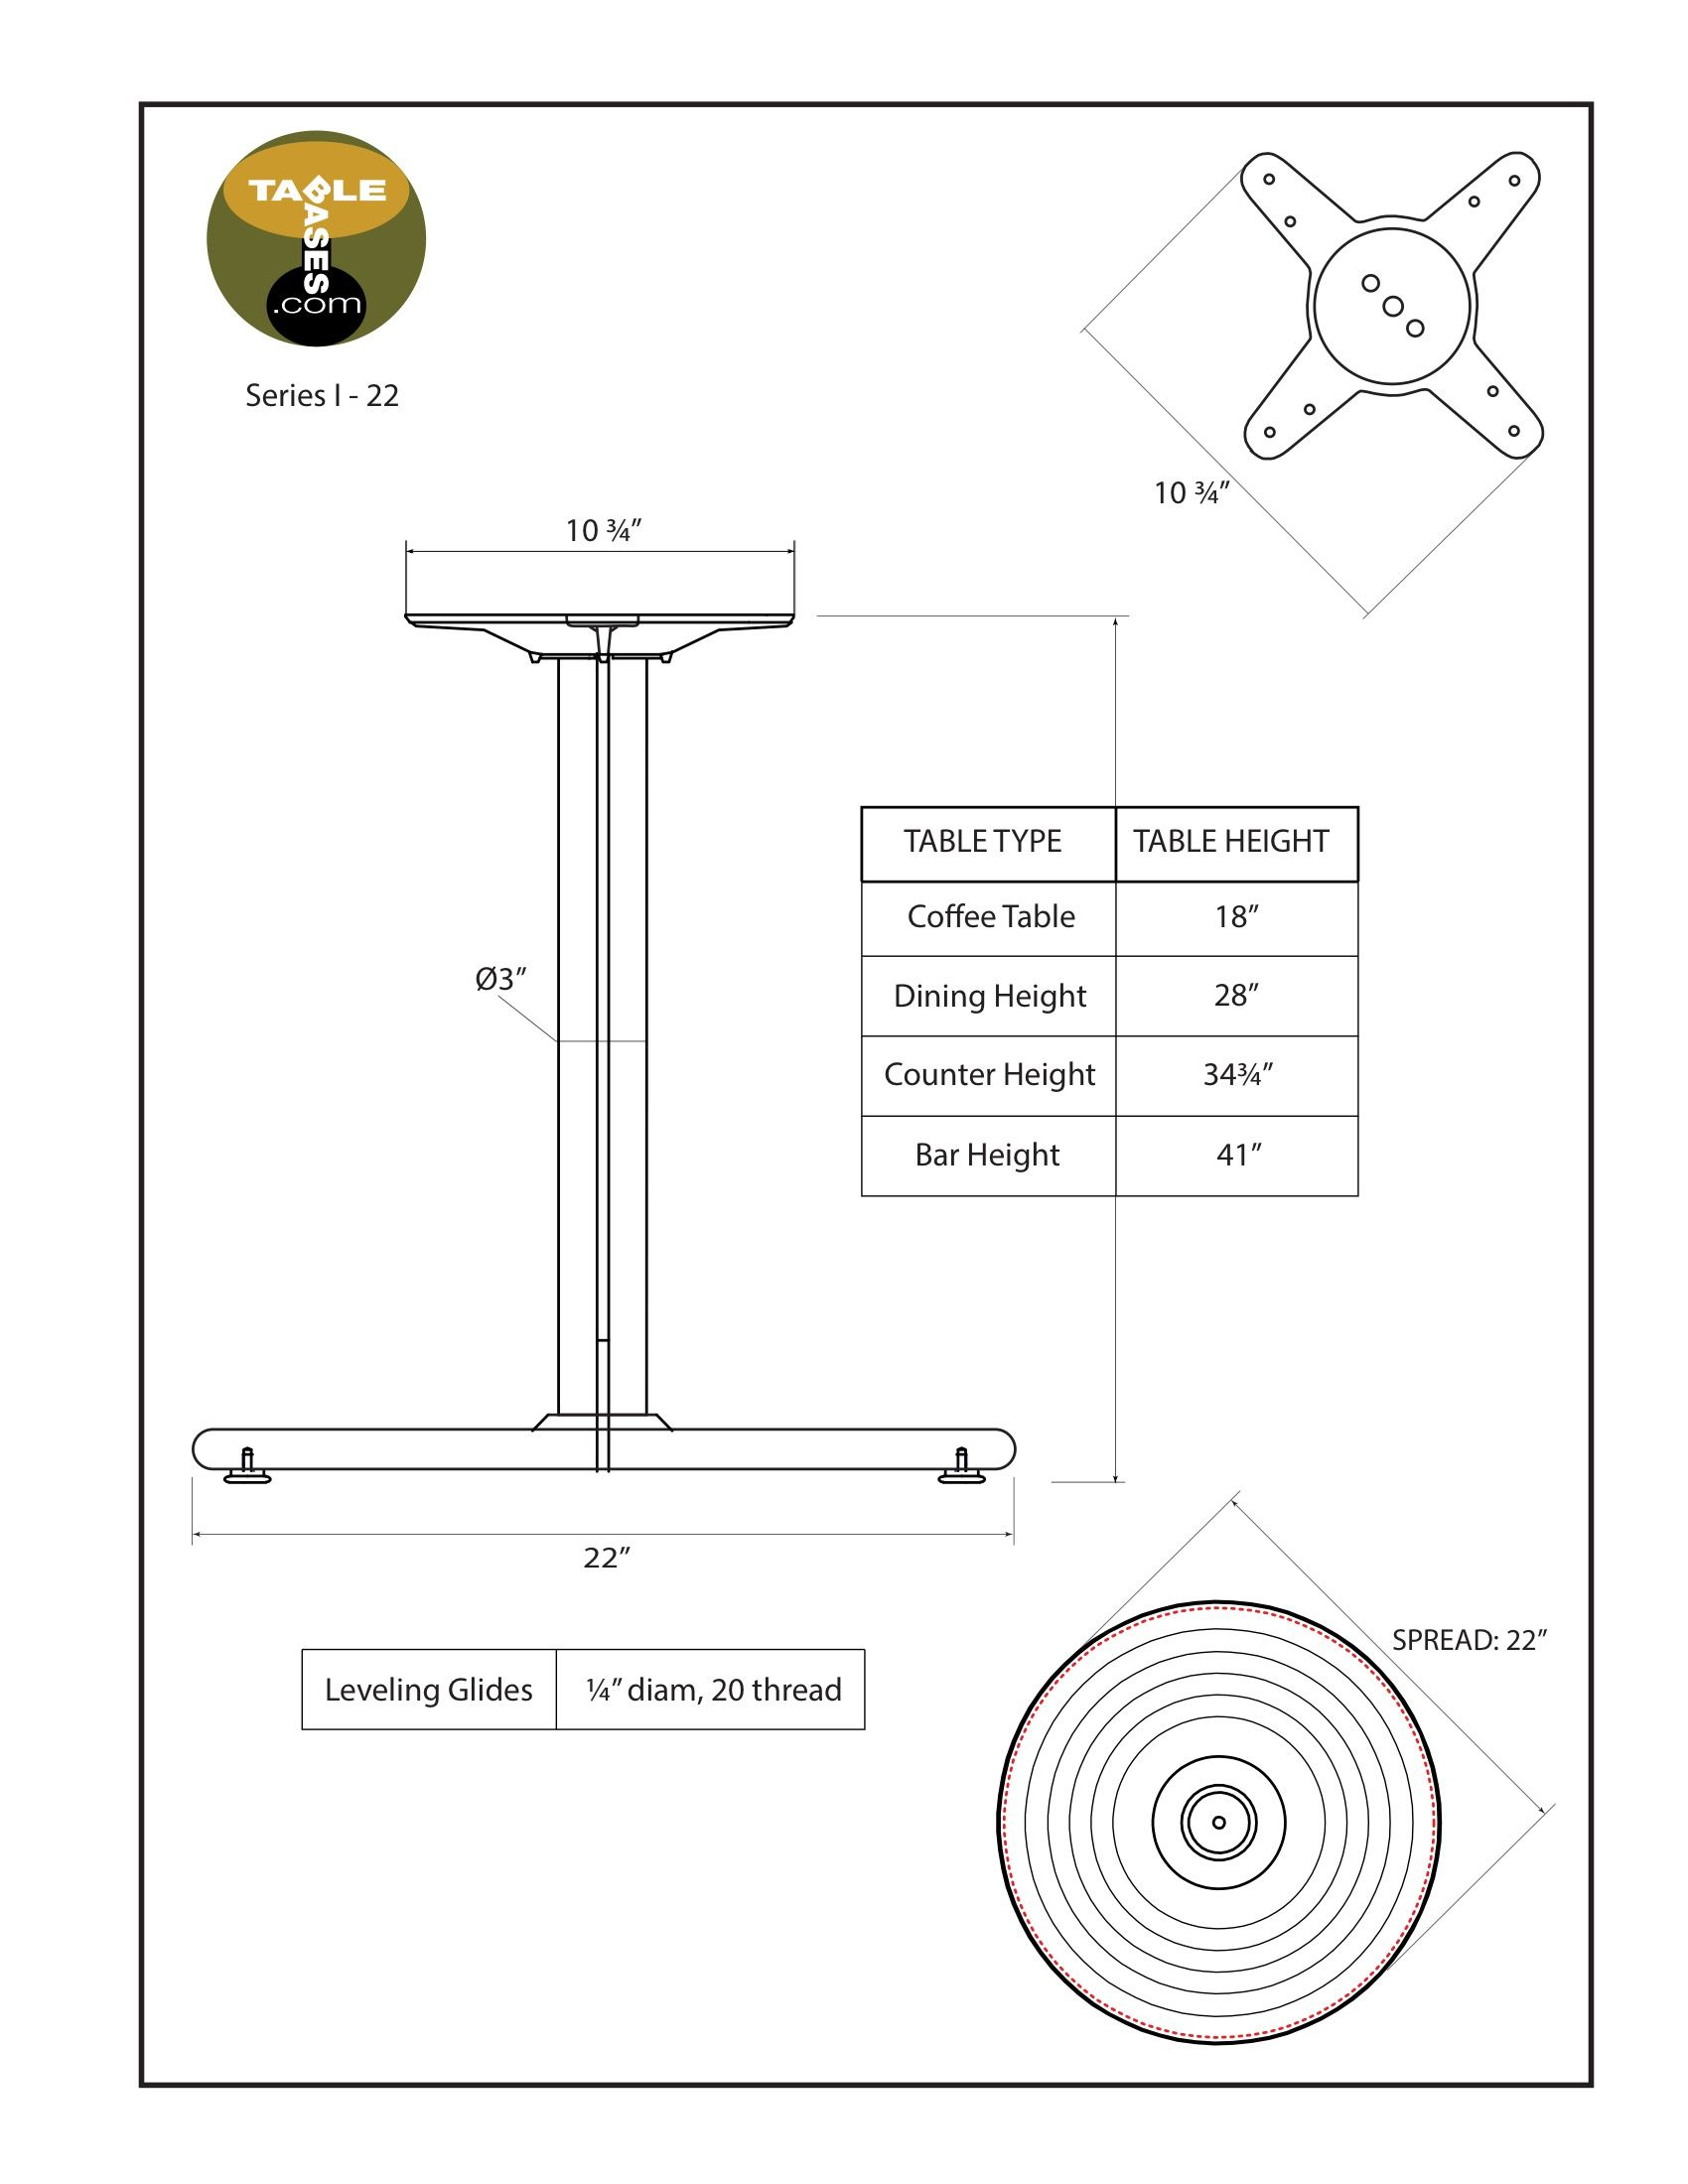 I22 Black Table Base - Specifications